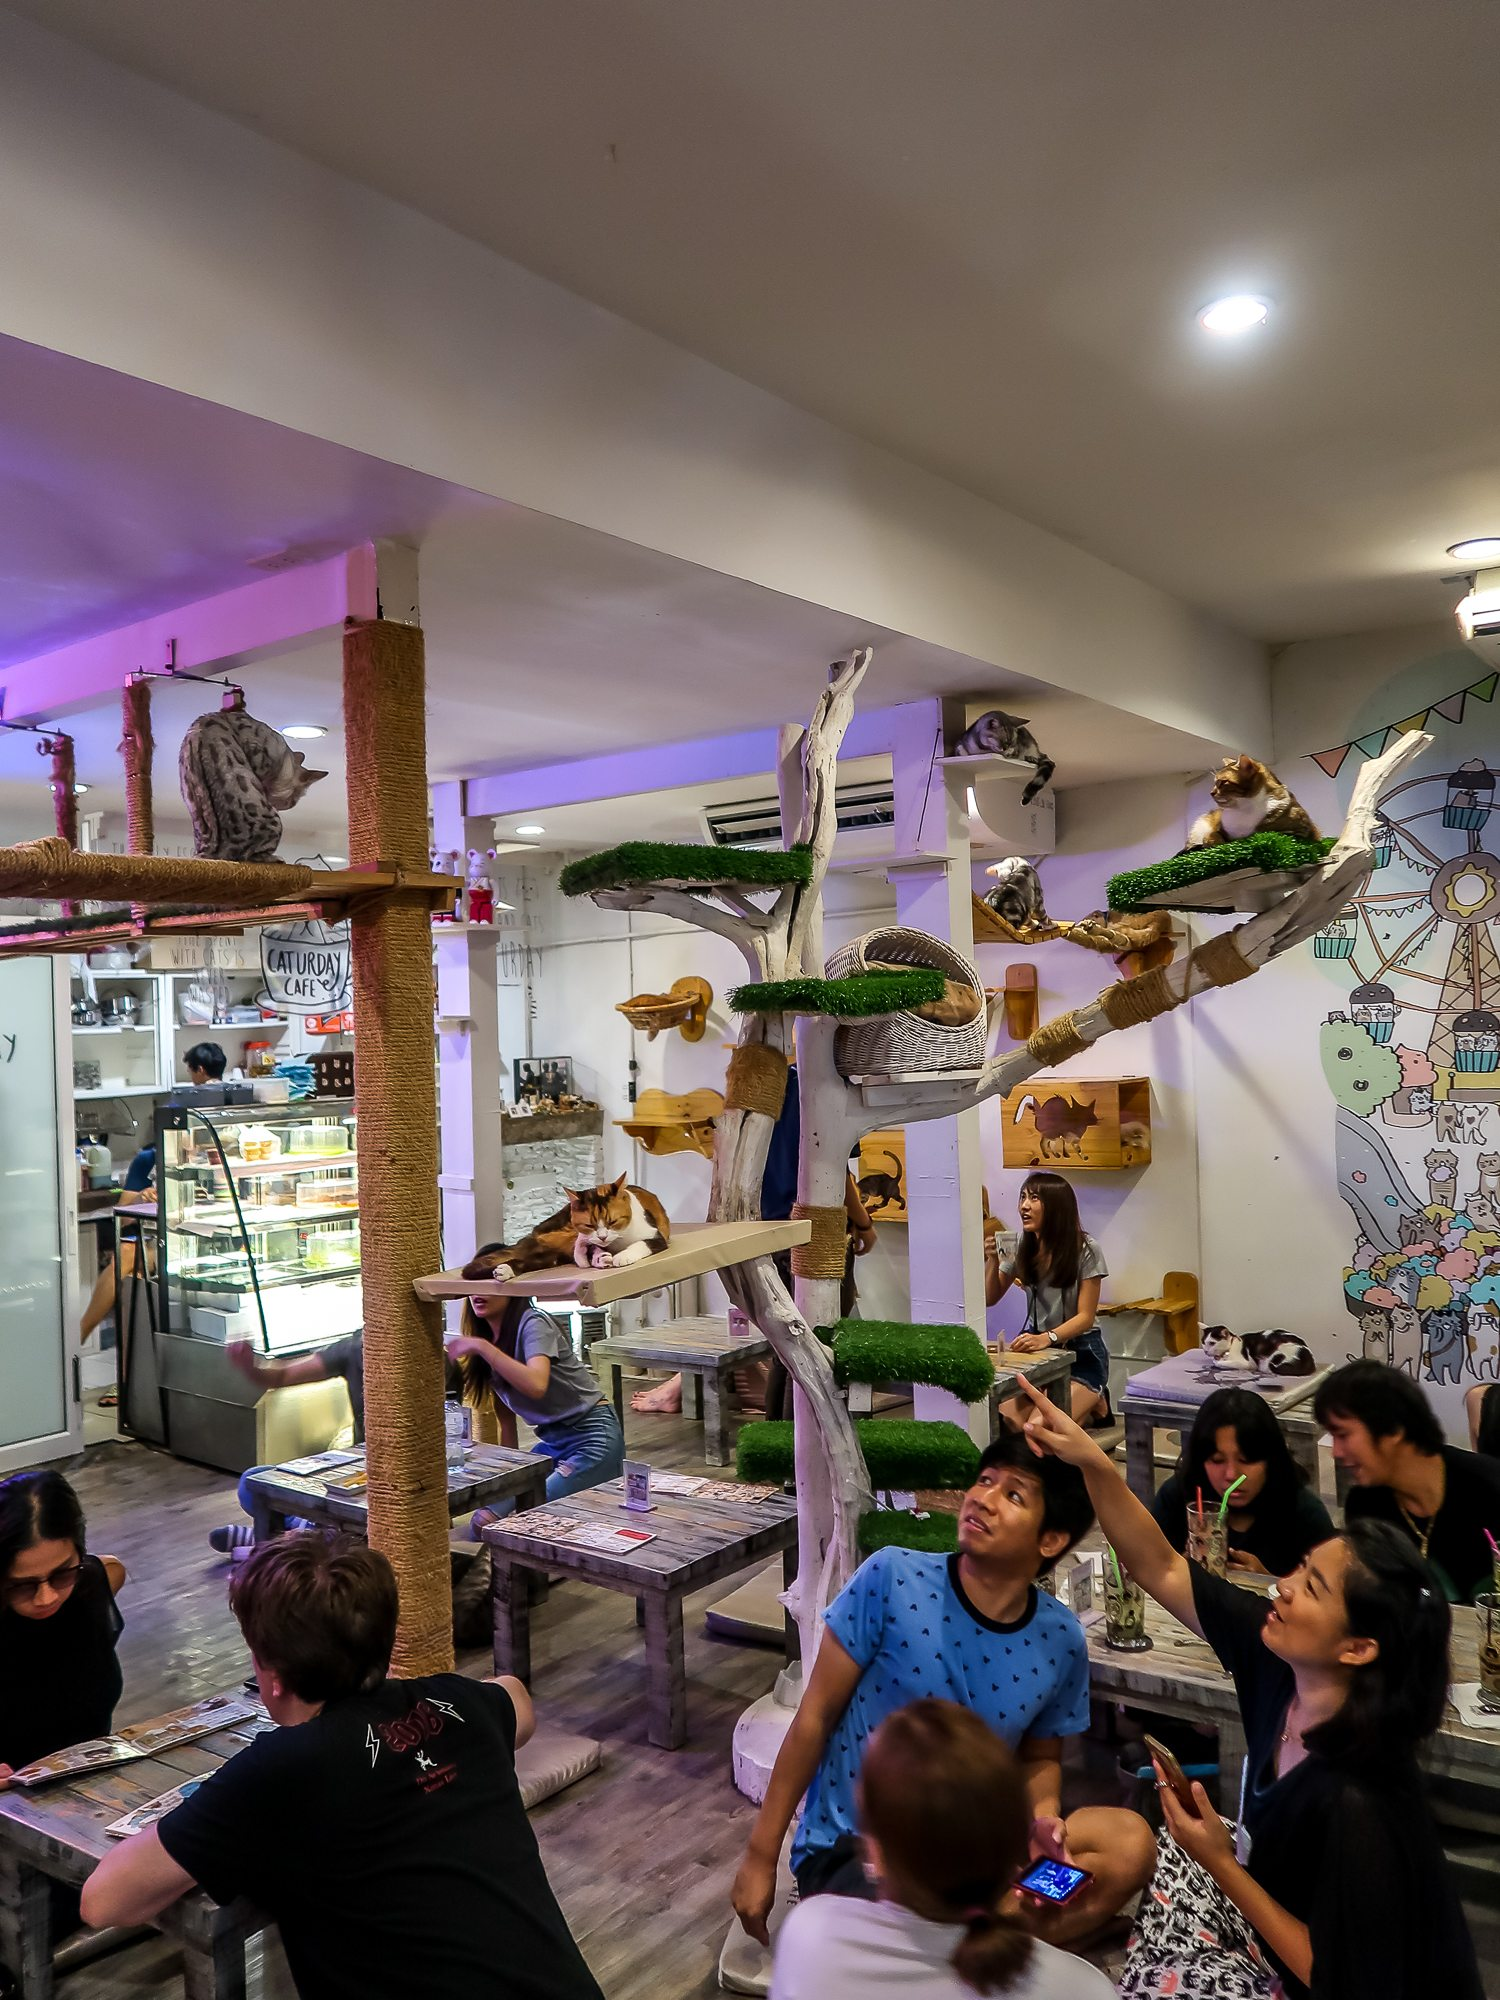 Inside Caturday cat cafe